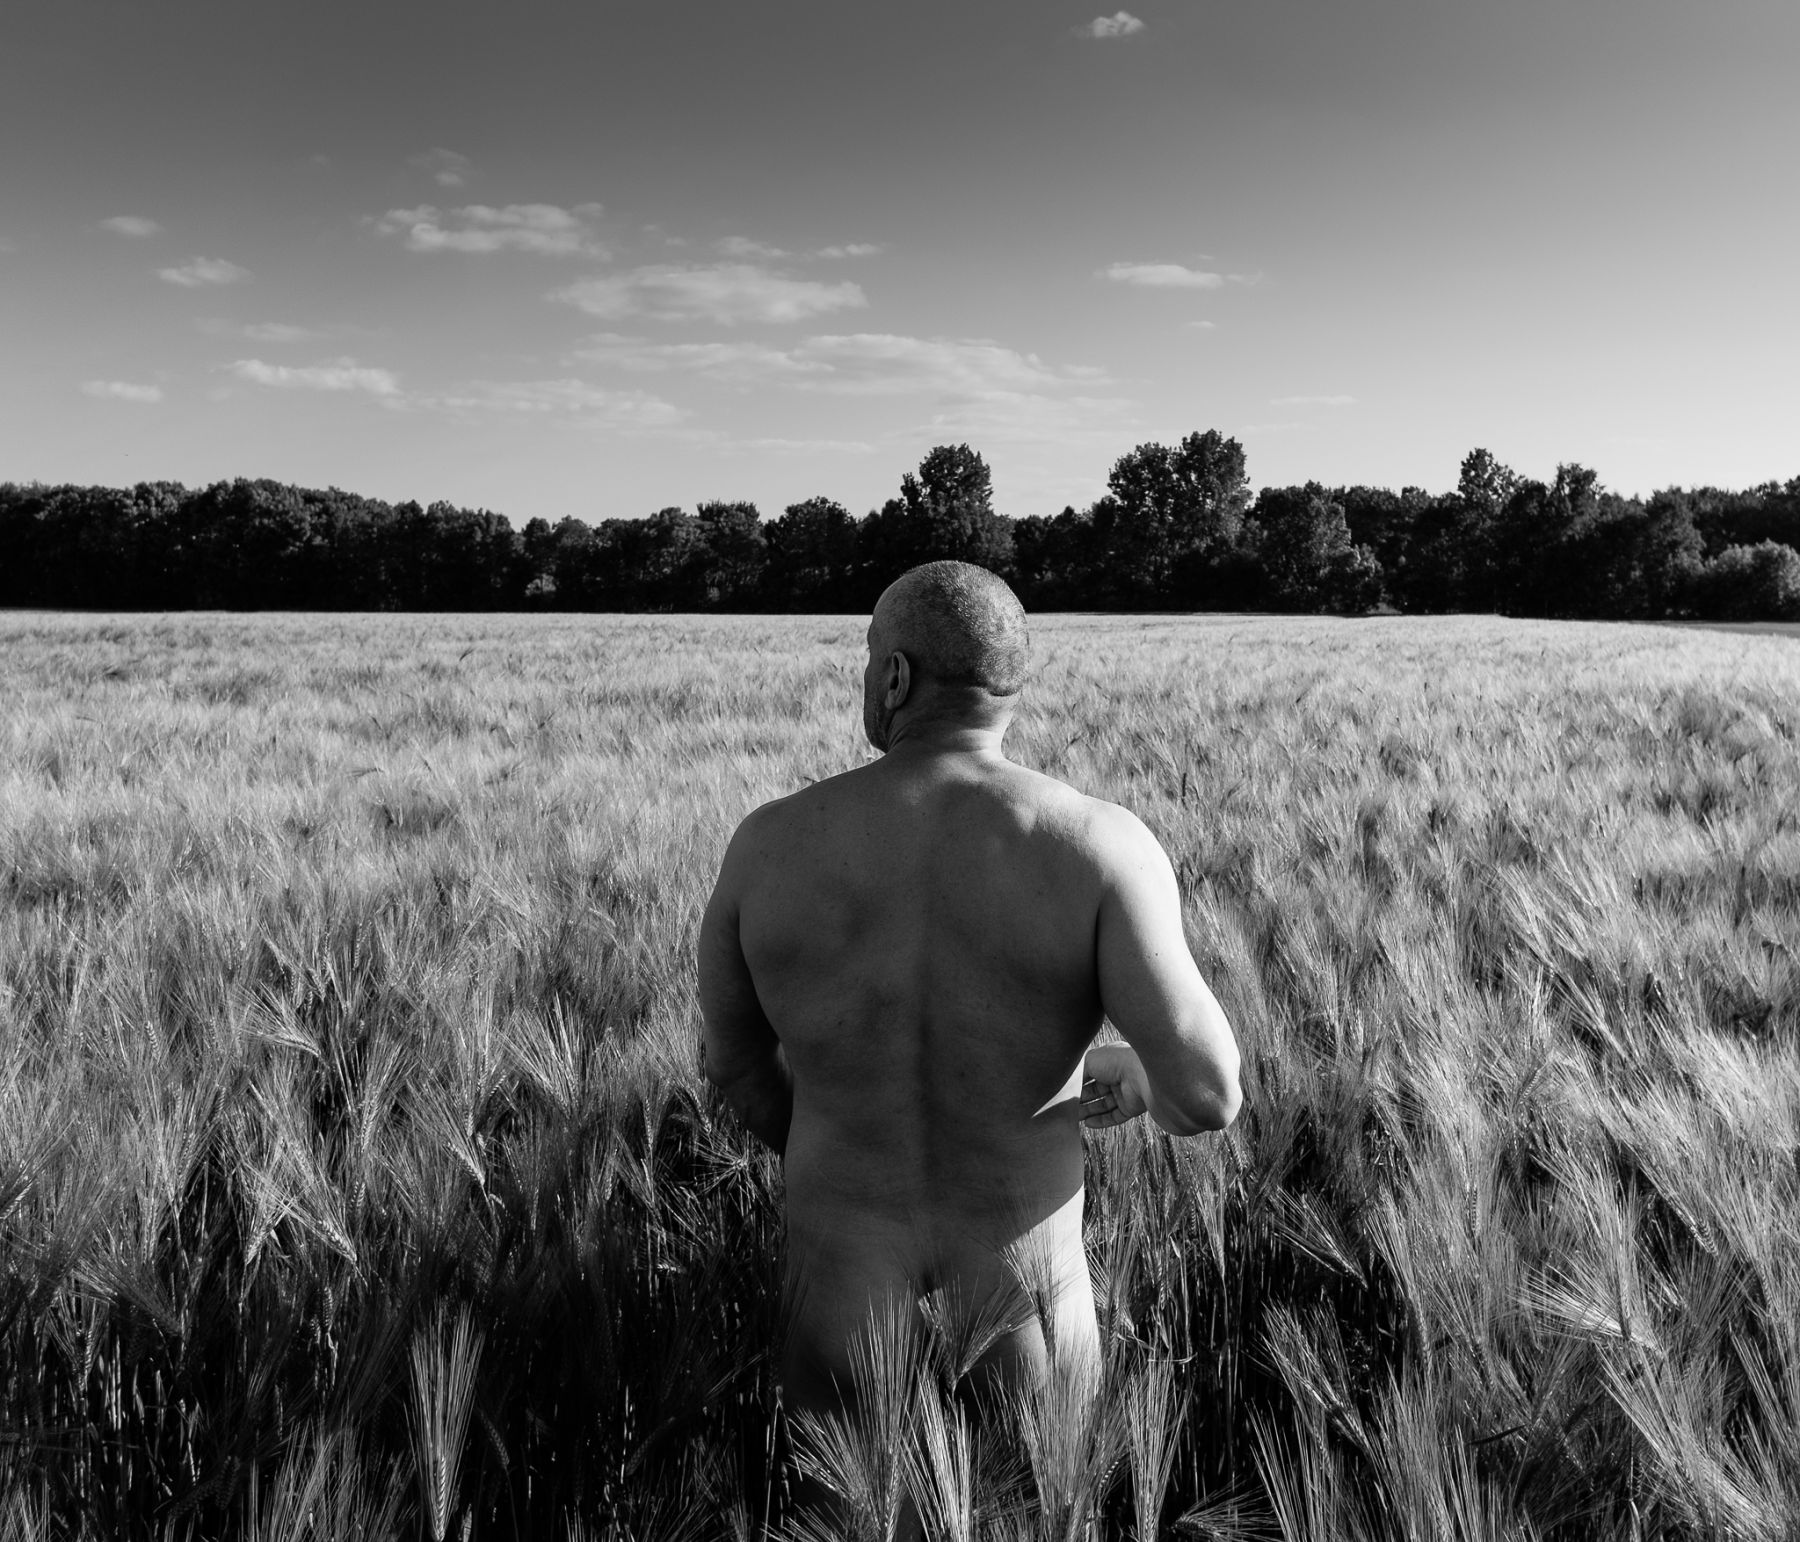 Giorgio in the Wheat | Epernay, France, 2014